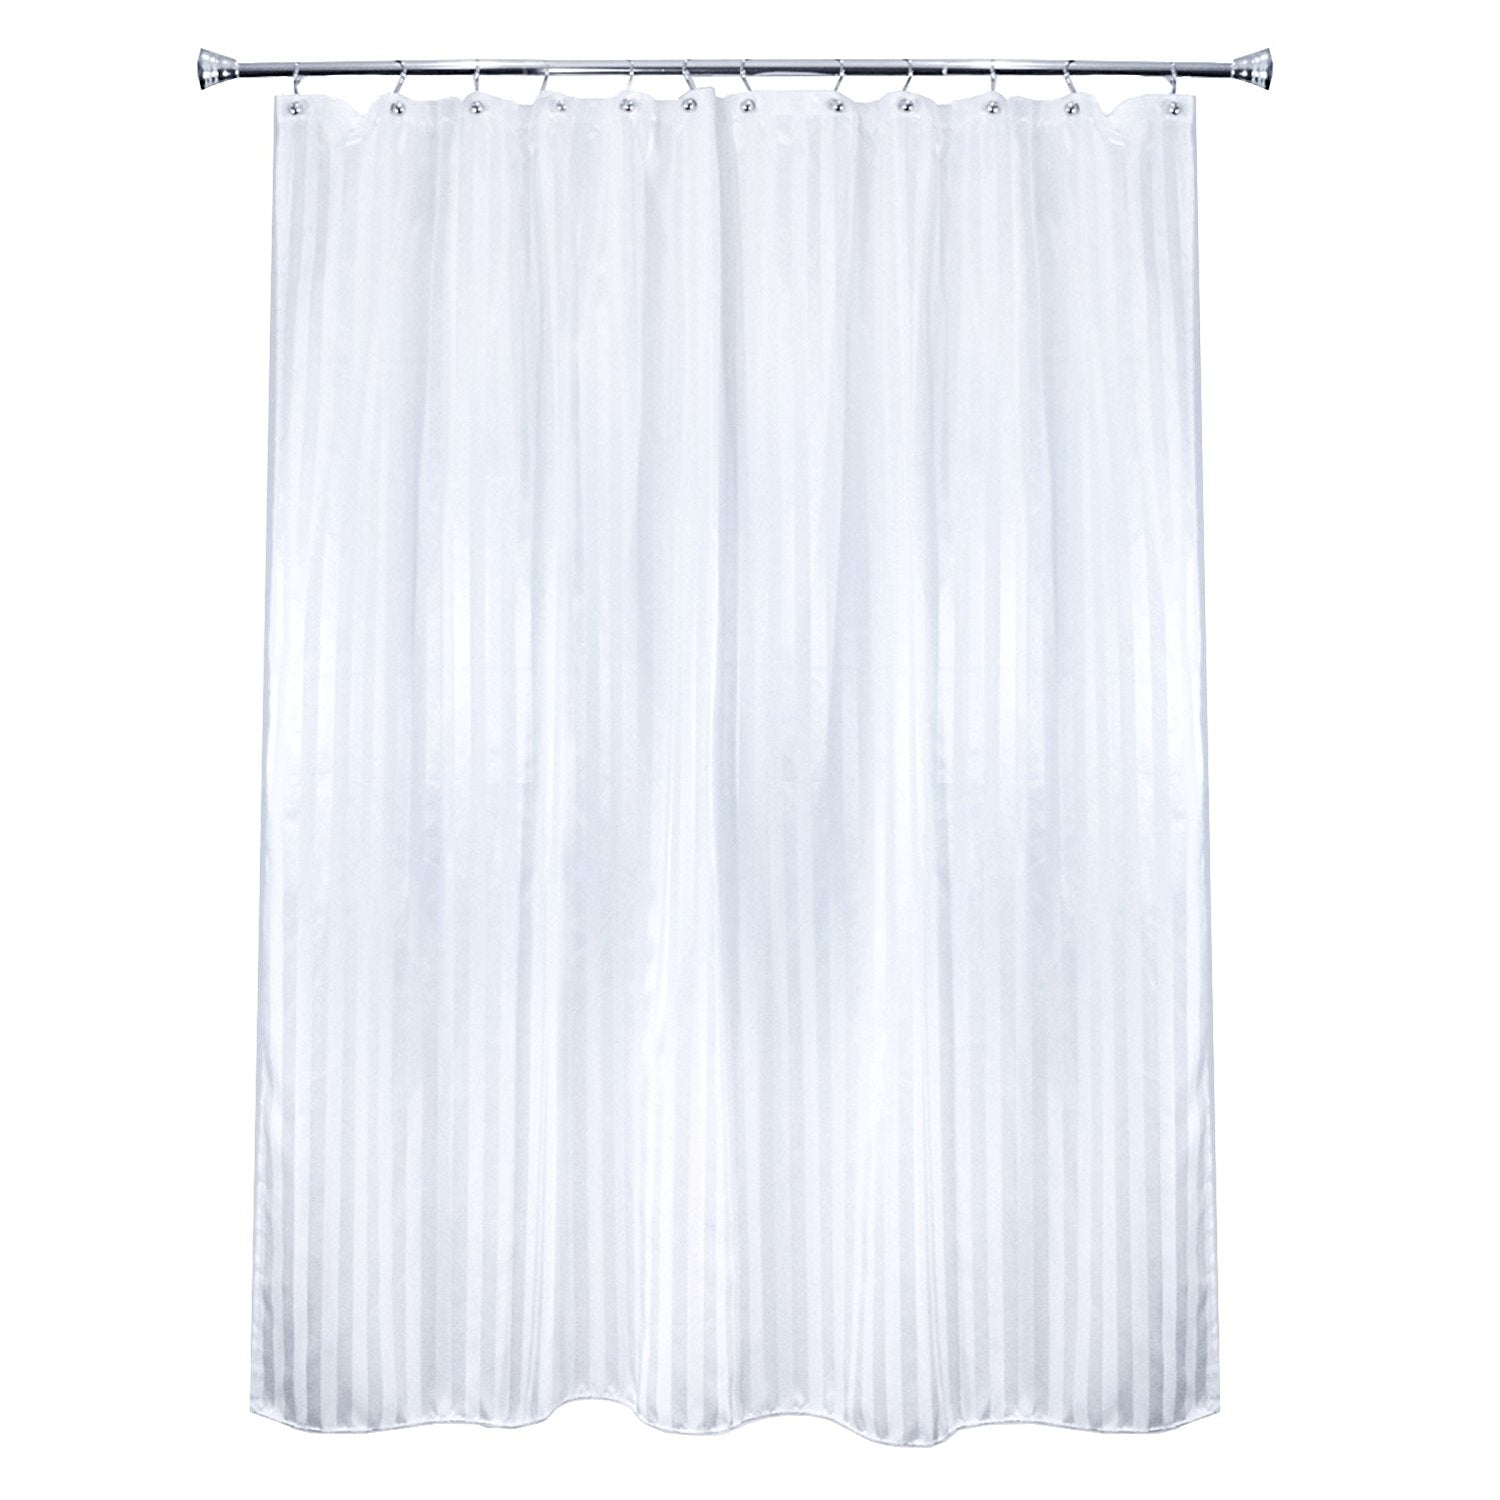 hookless liners unique pin shower liner curtain walmart